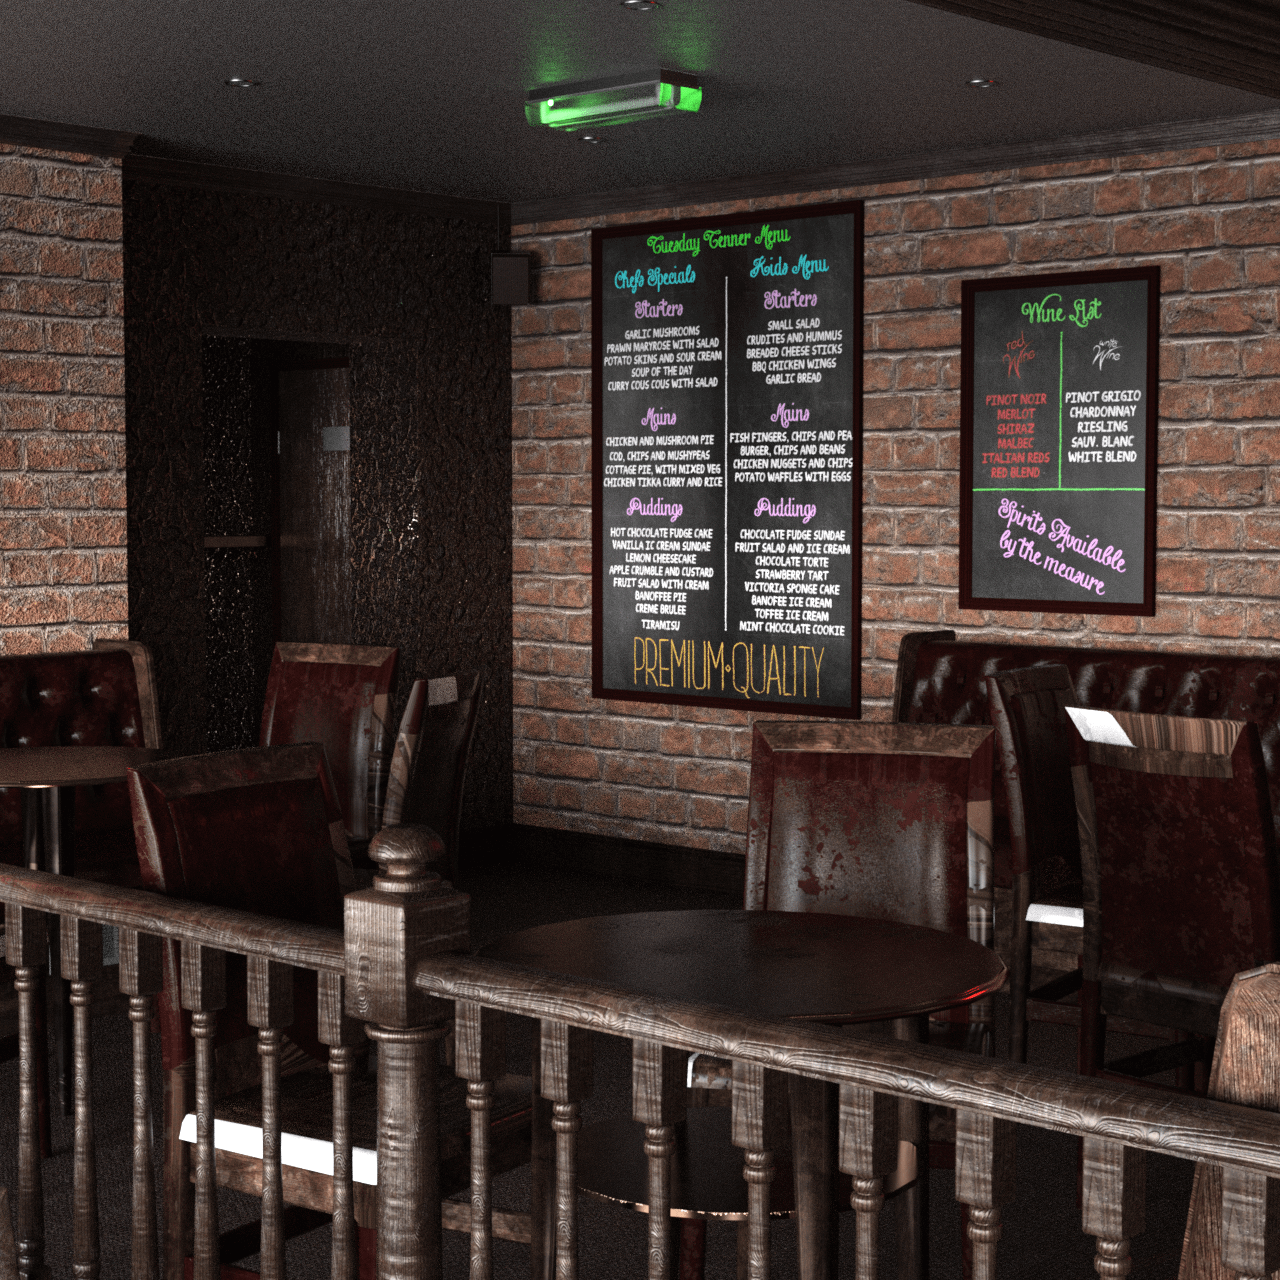 Render of the seat area of the bar